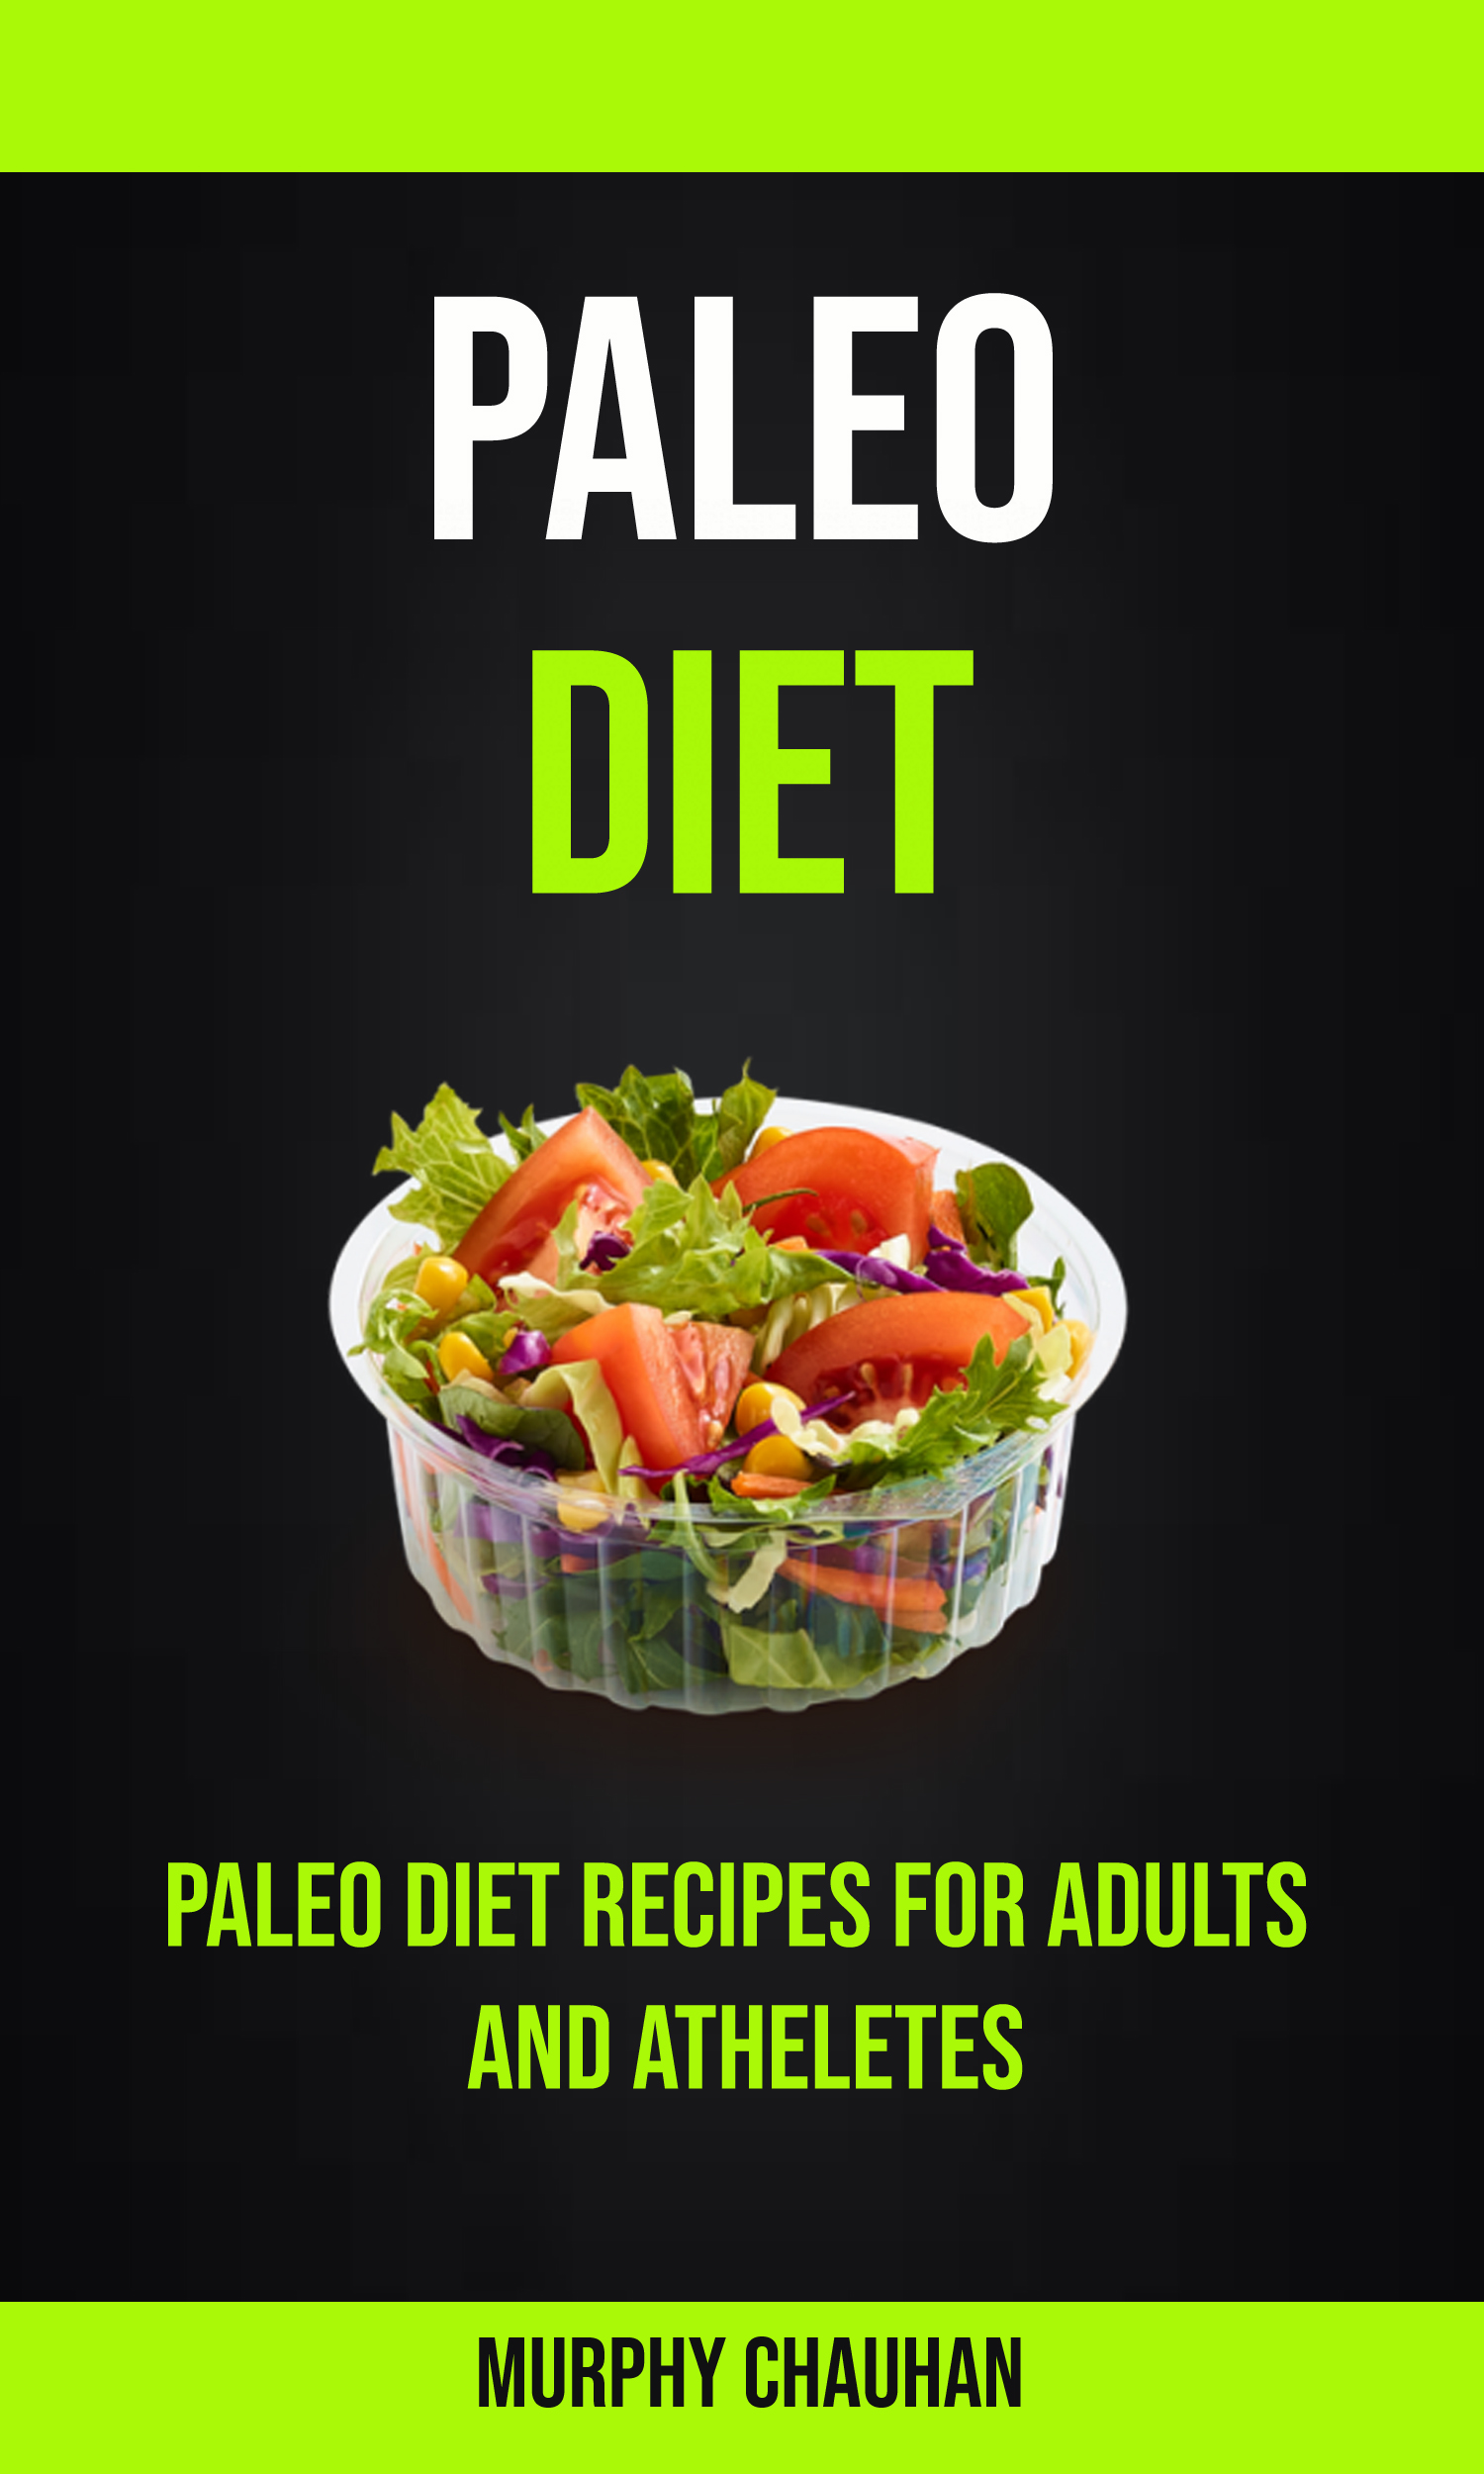 Paleo diet: paleo diet recipes for adults and atheletes